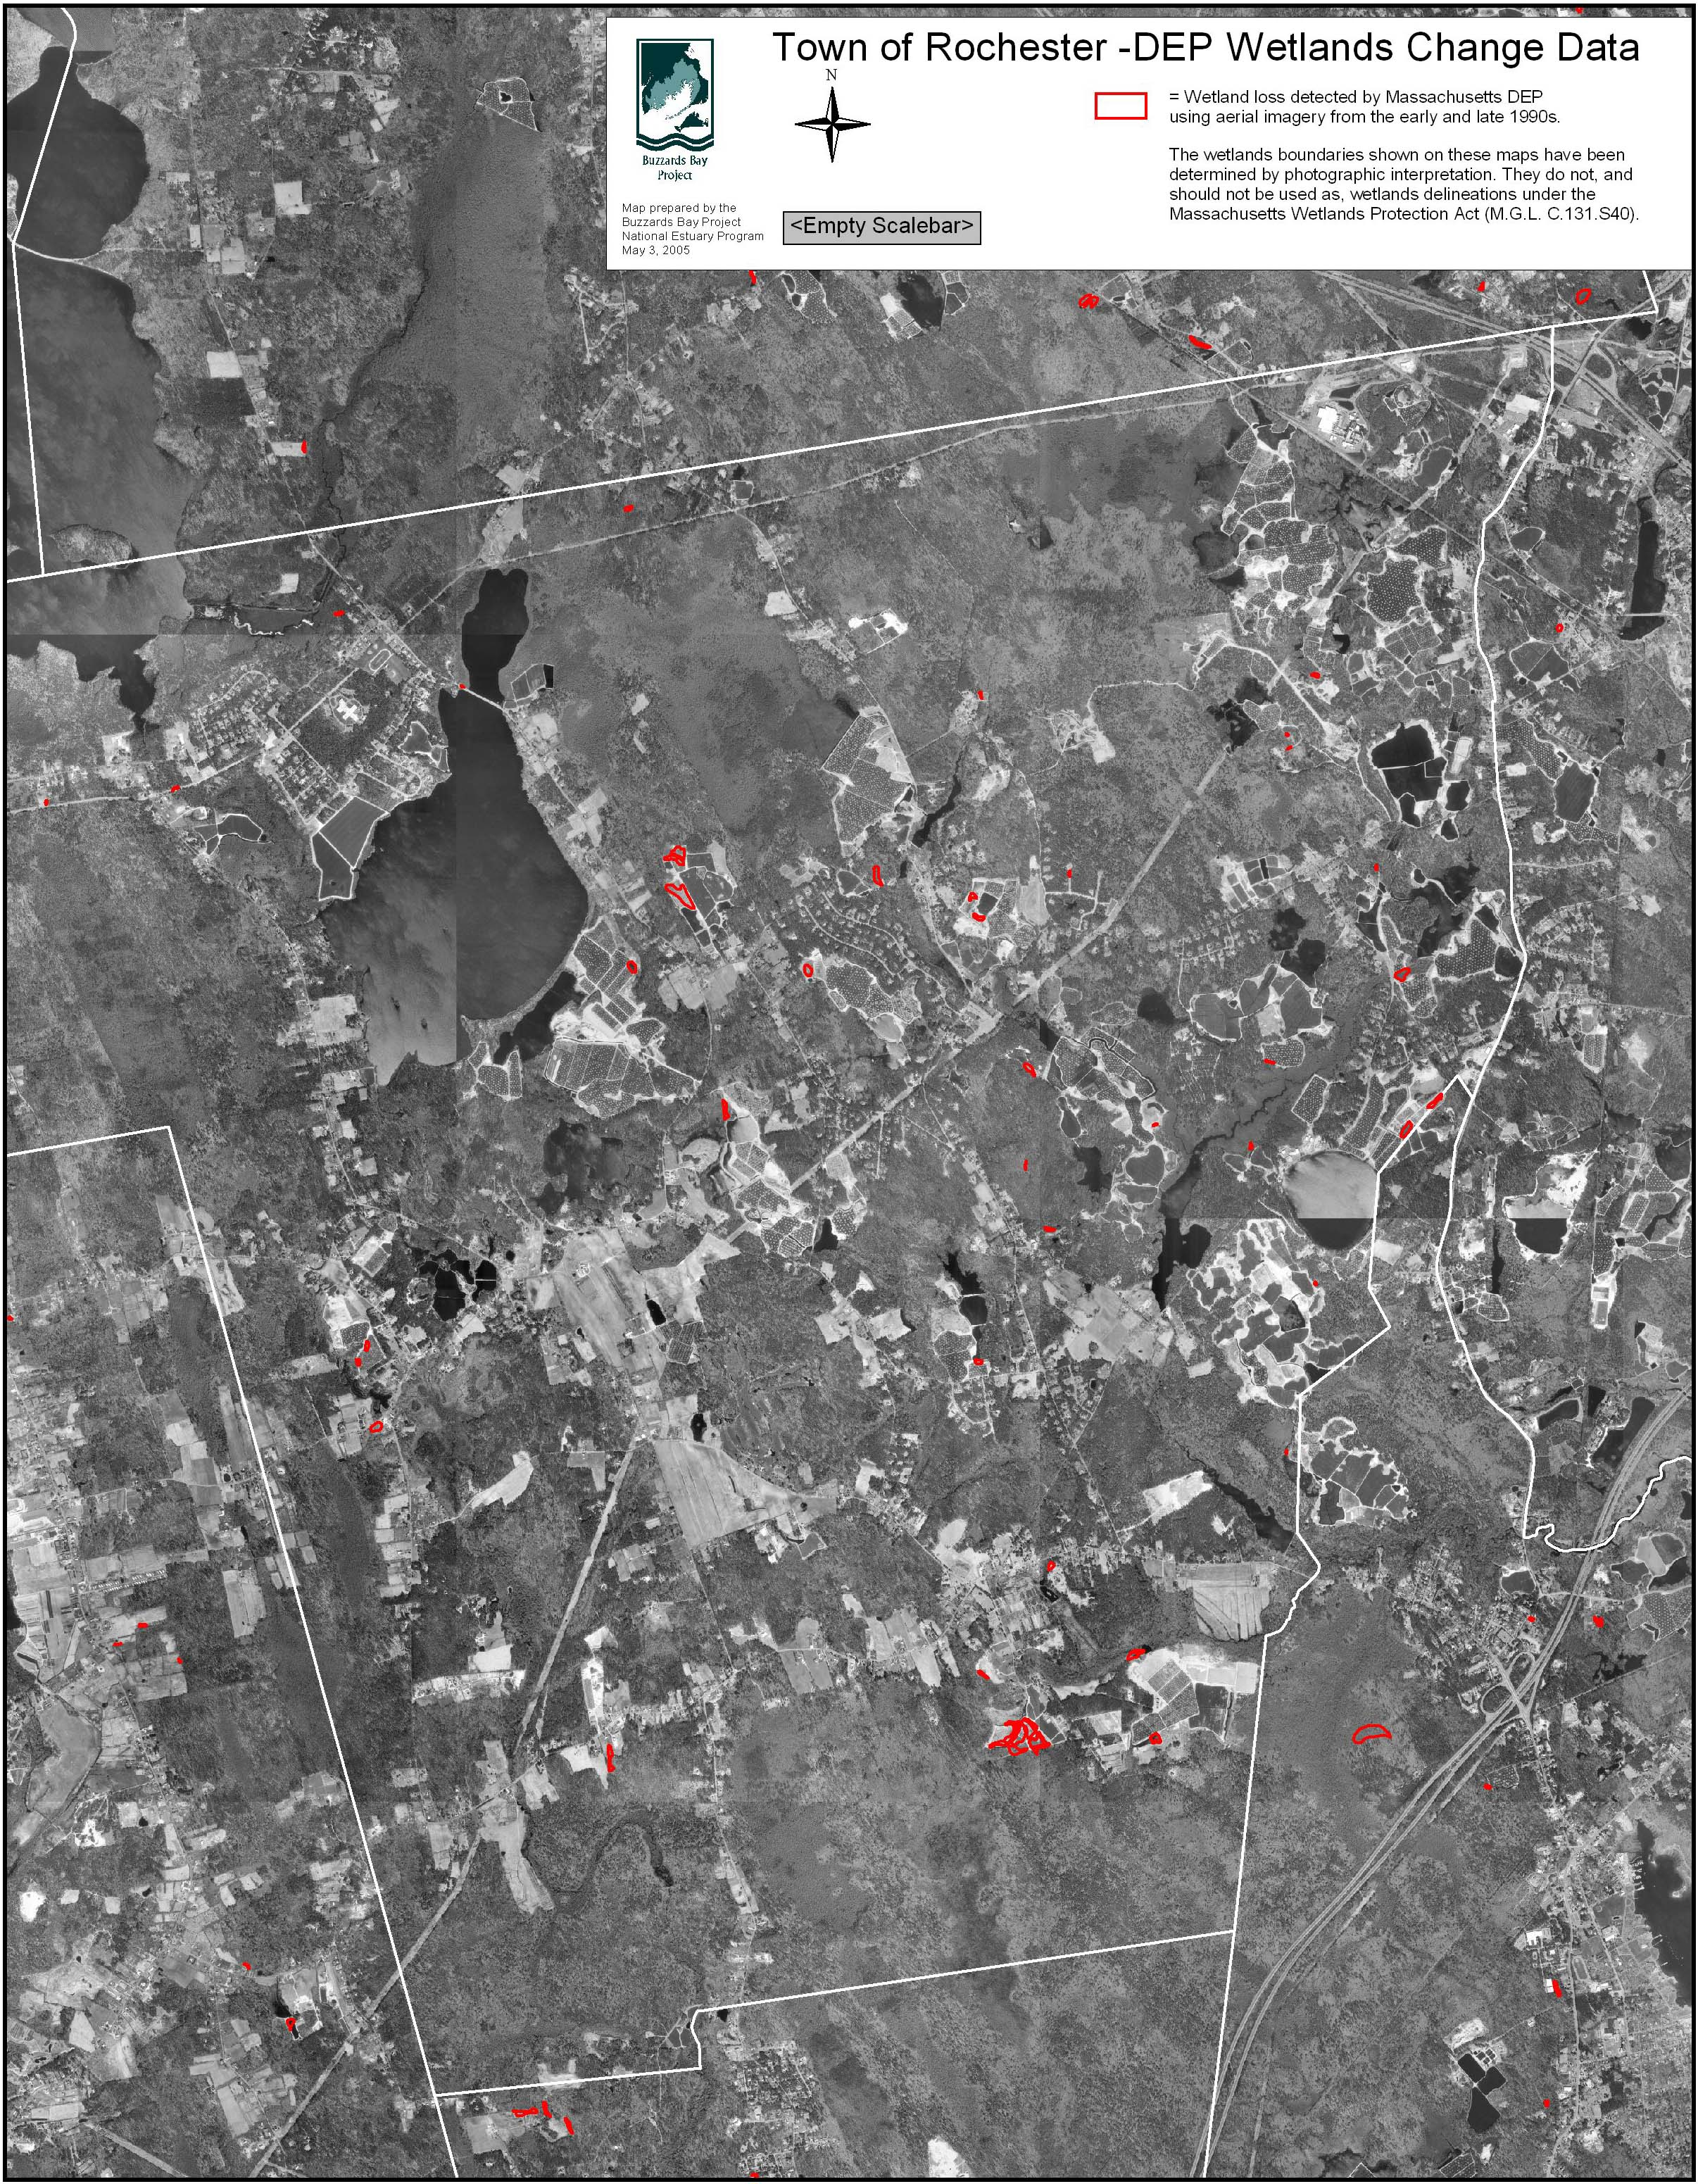 Town Of Rochester Wetland Loss Map